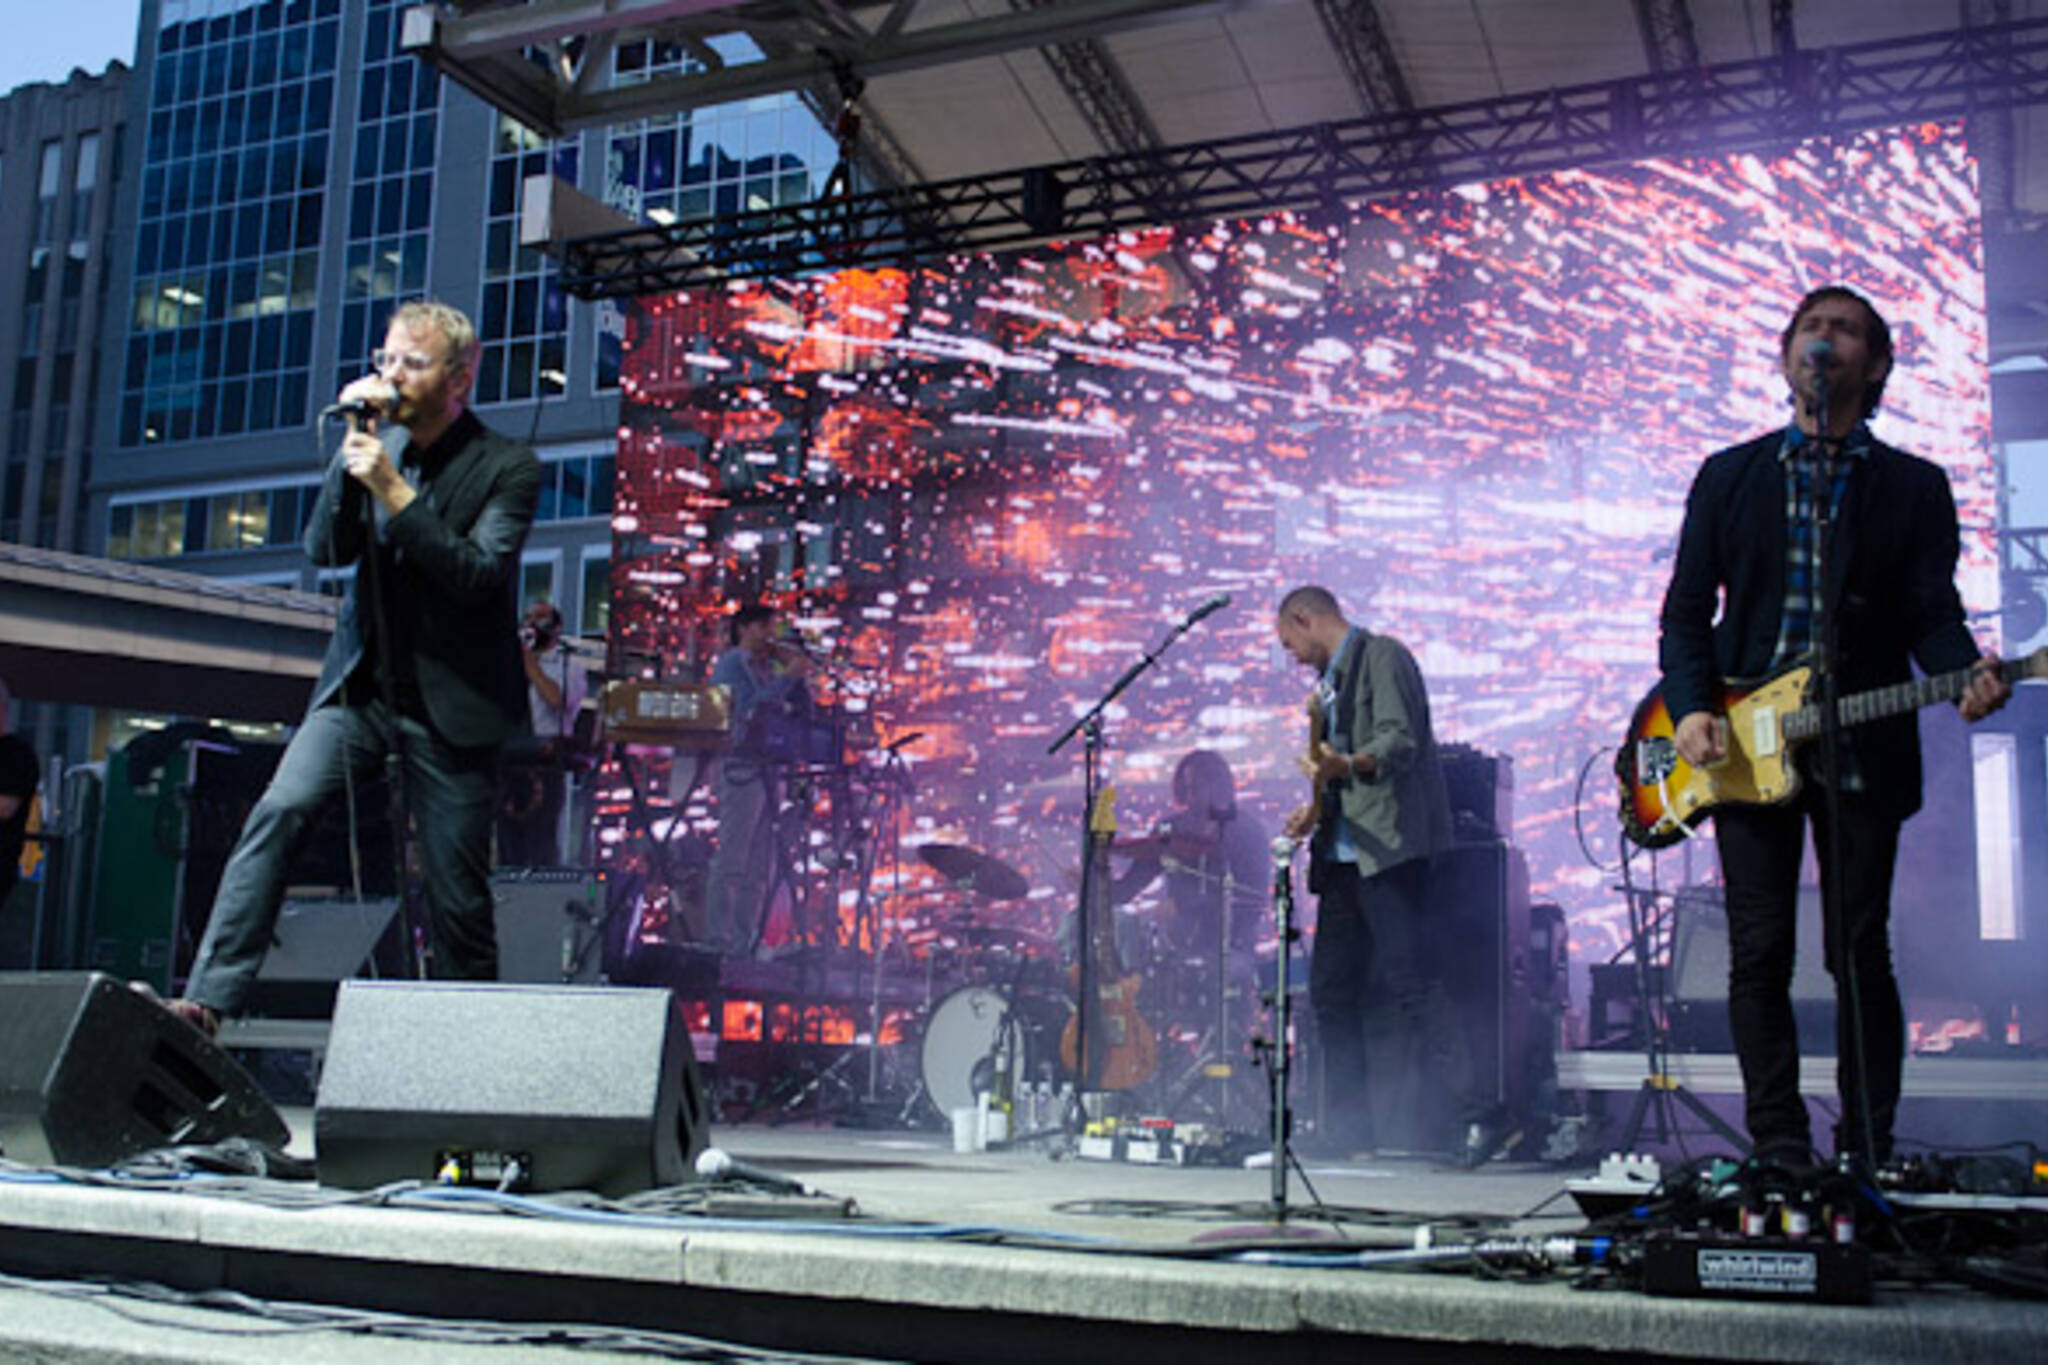 The National Live Toronto